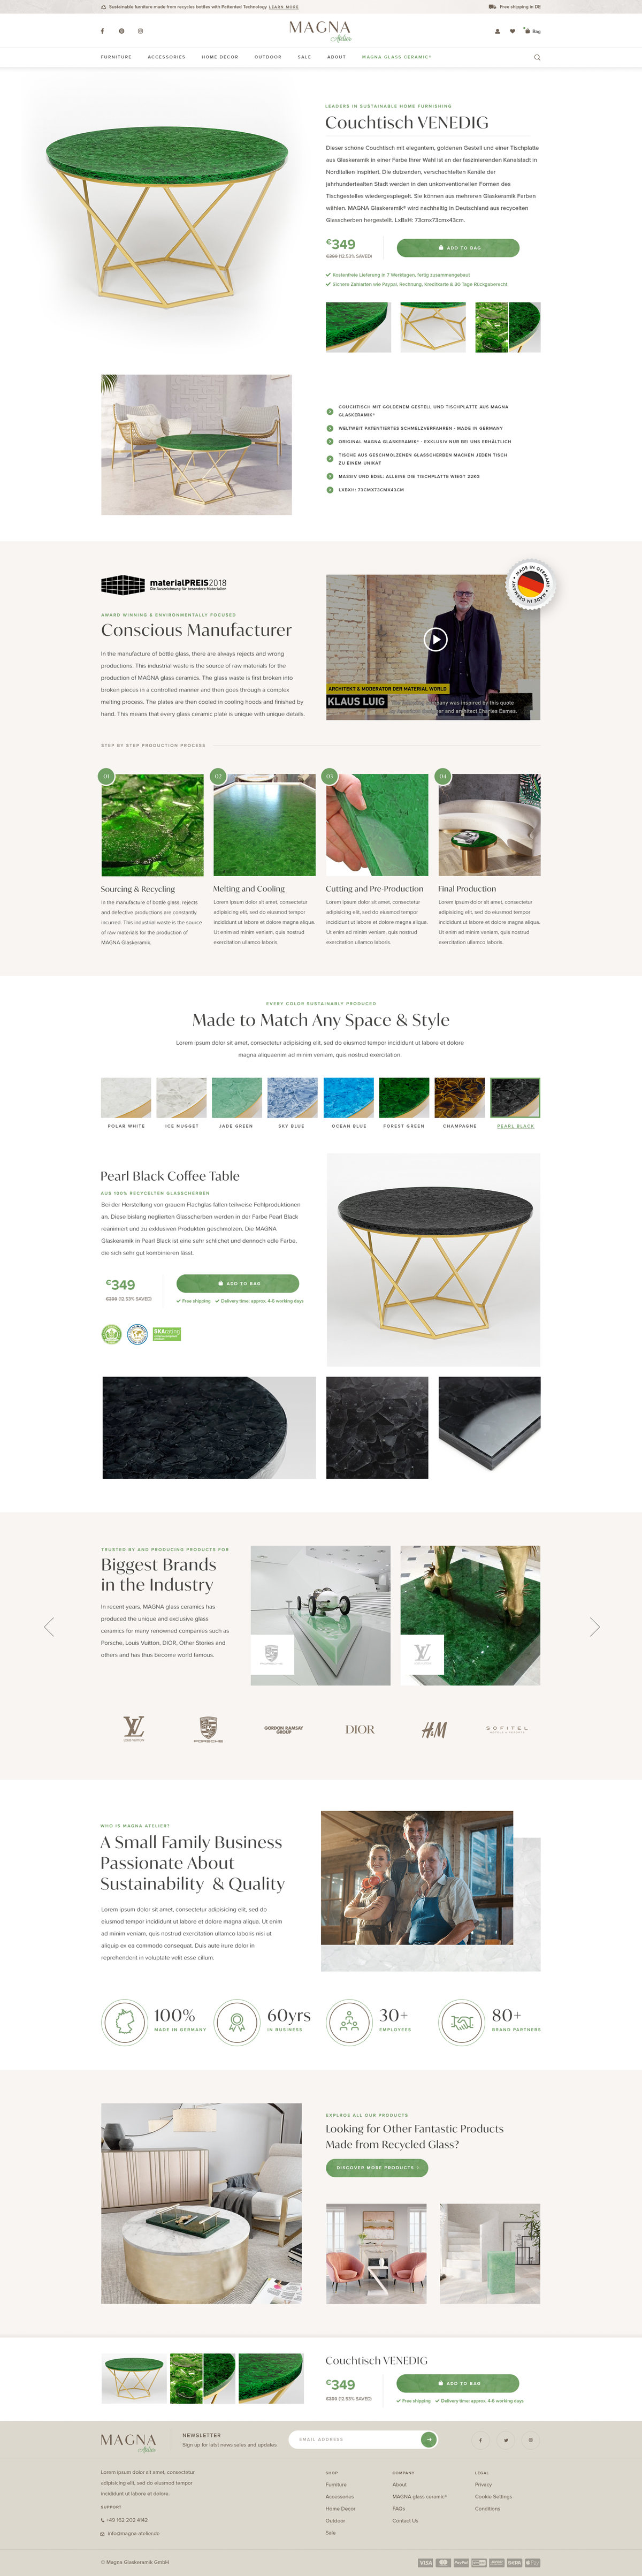 Landing Page Coffee Tables